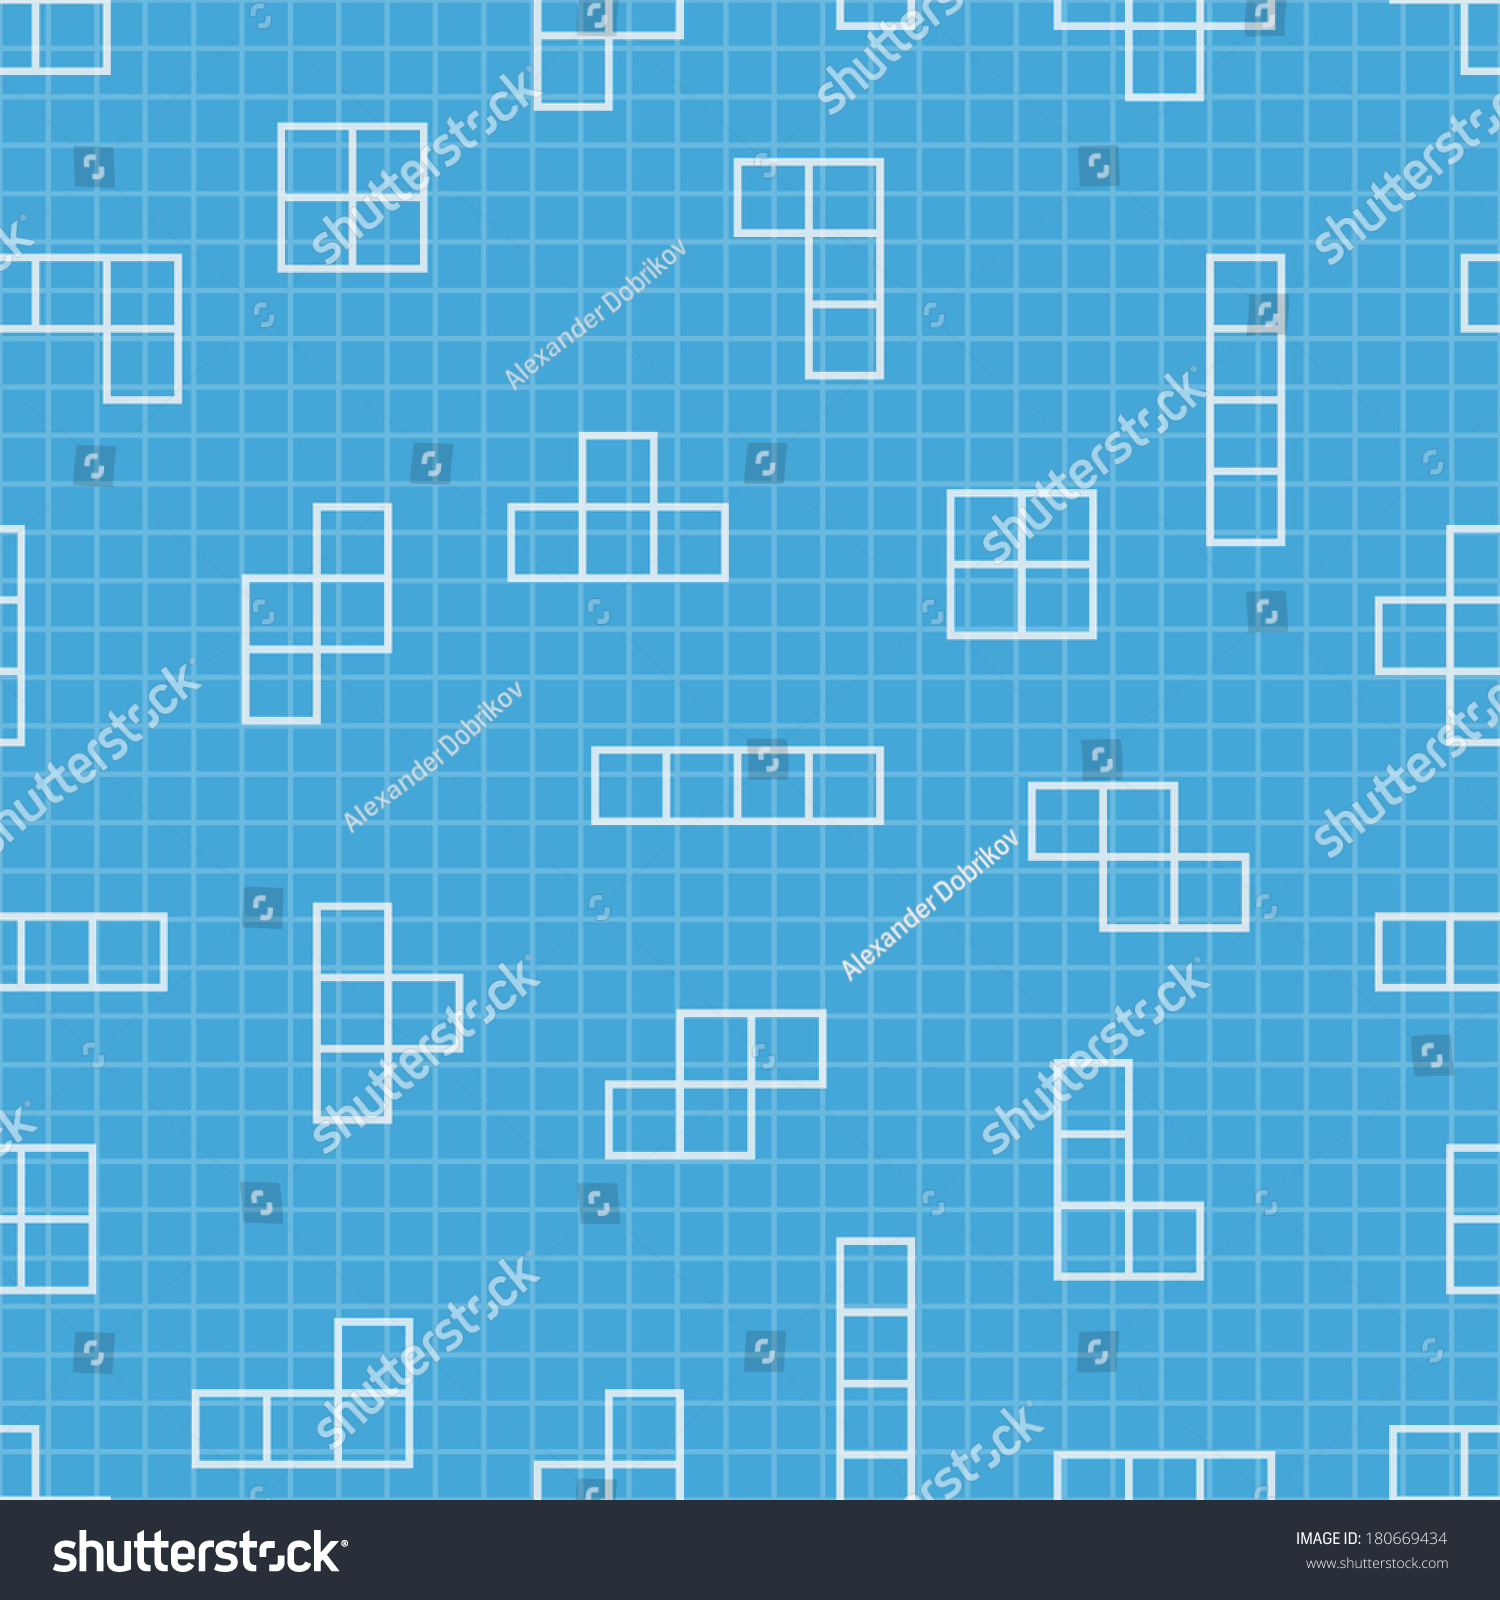 Seamless pattern blueprint design vector elements stock vector seamless pattern blueprint design vector elements game background minimal illustration use malvernweather Images